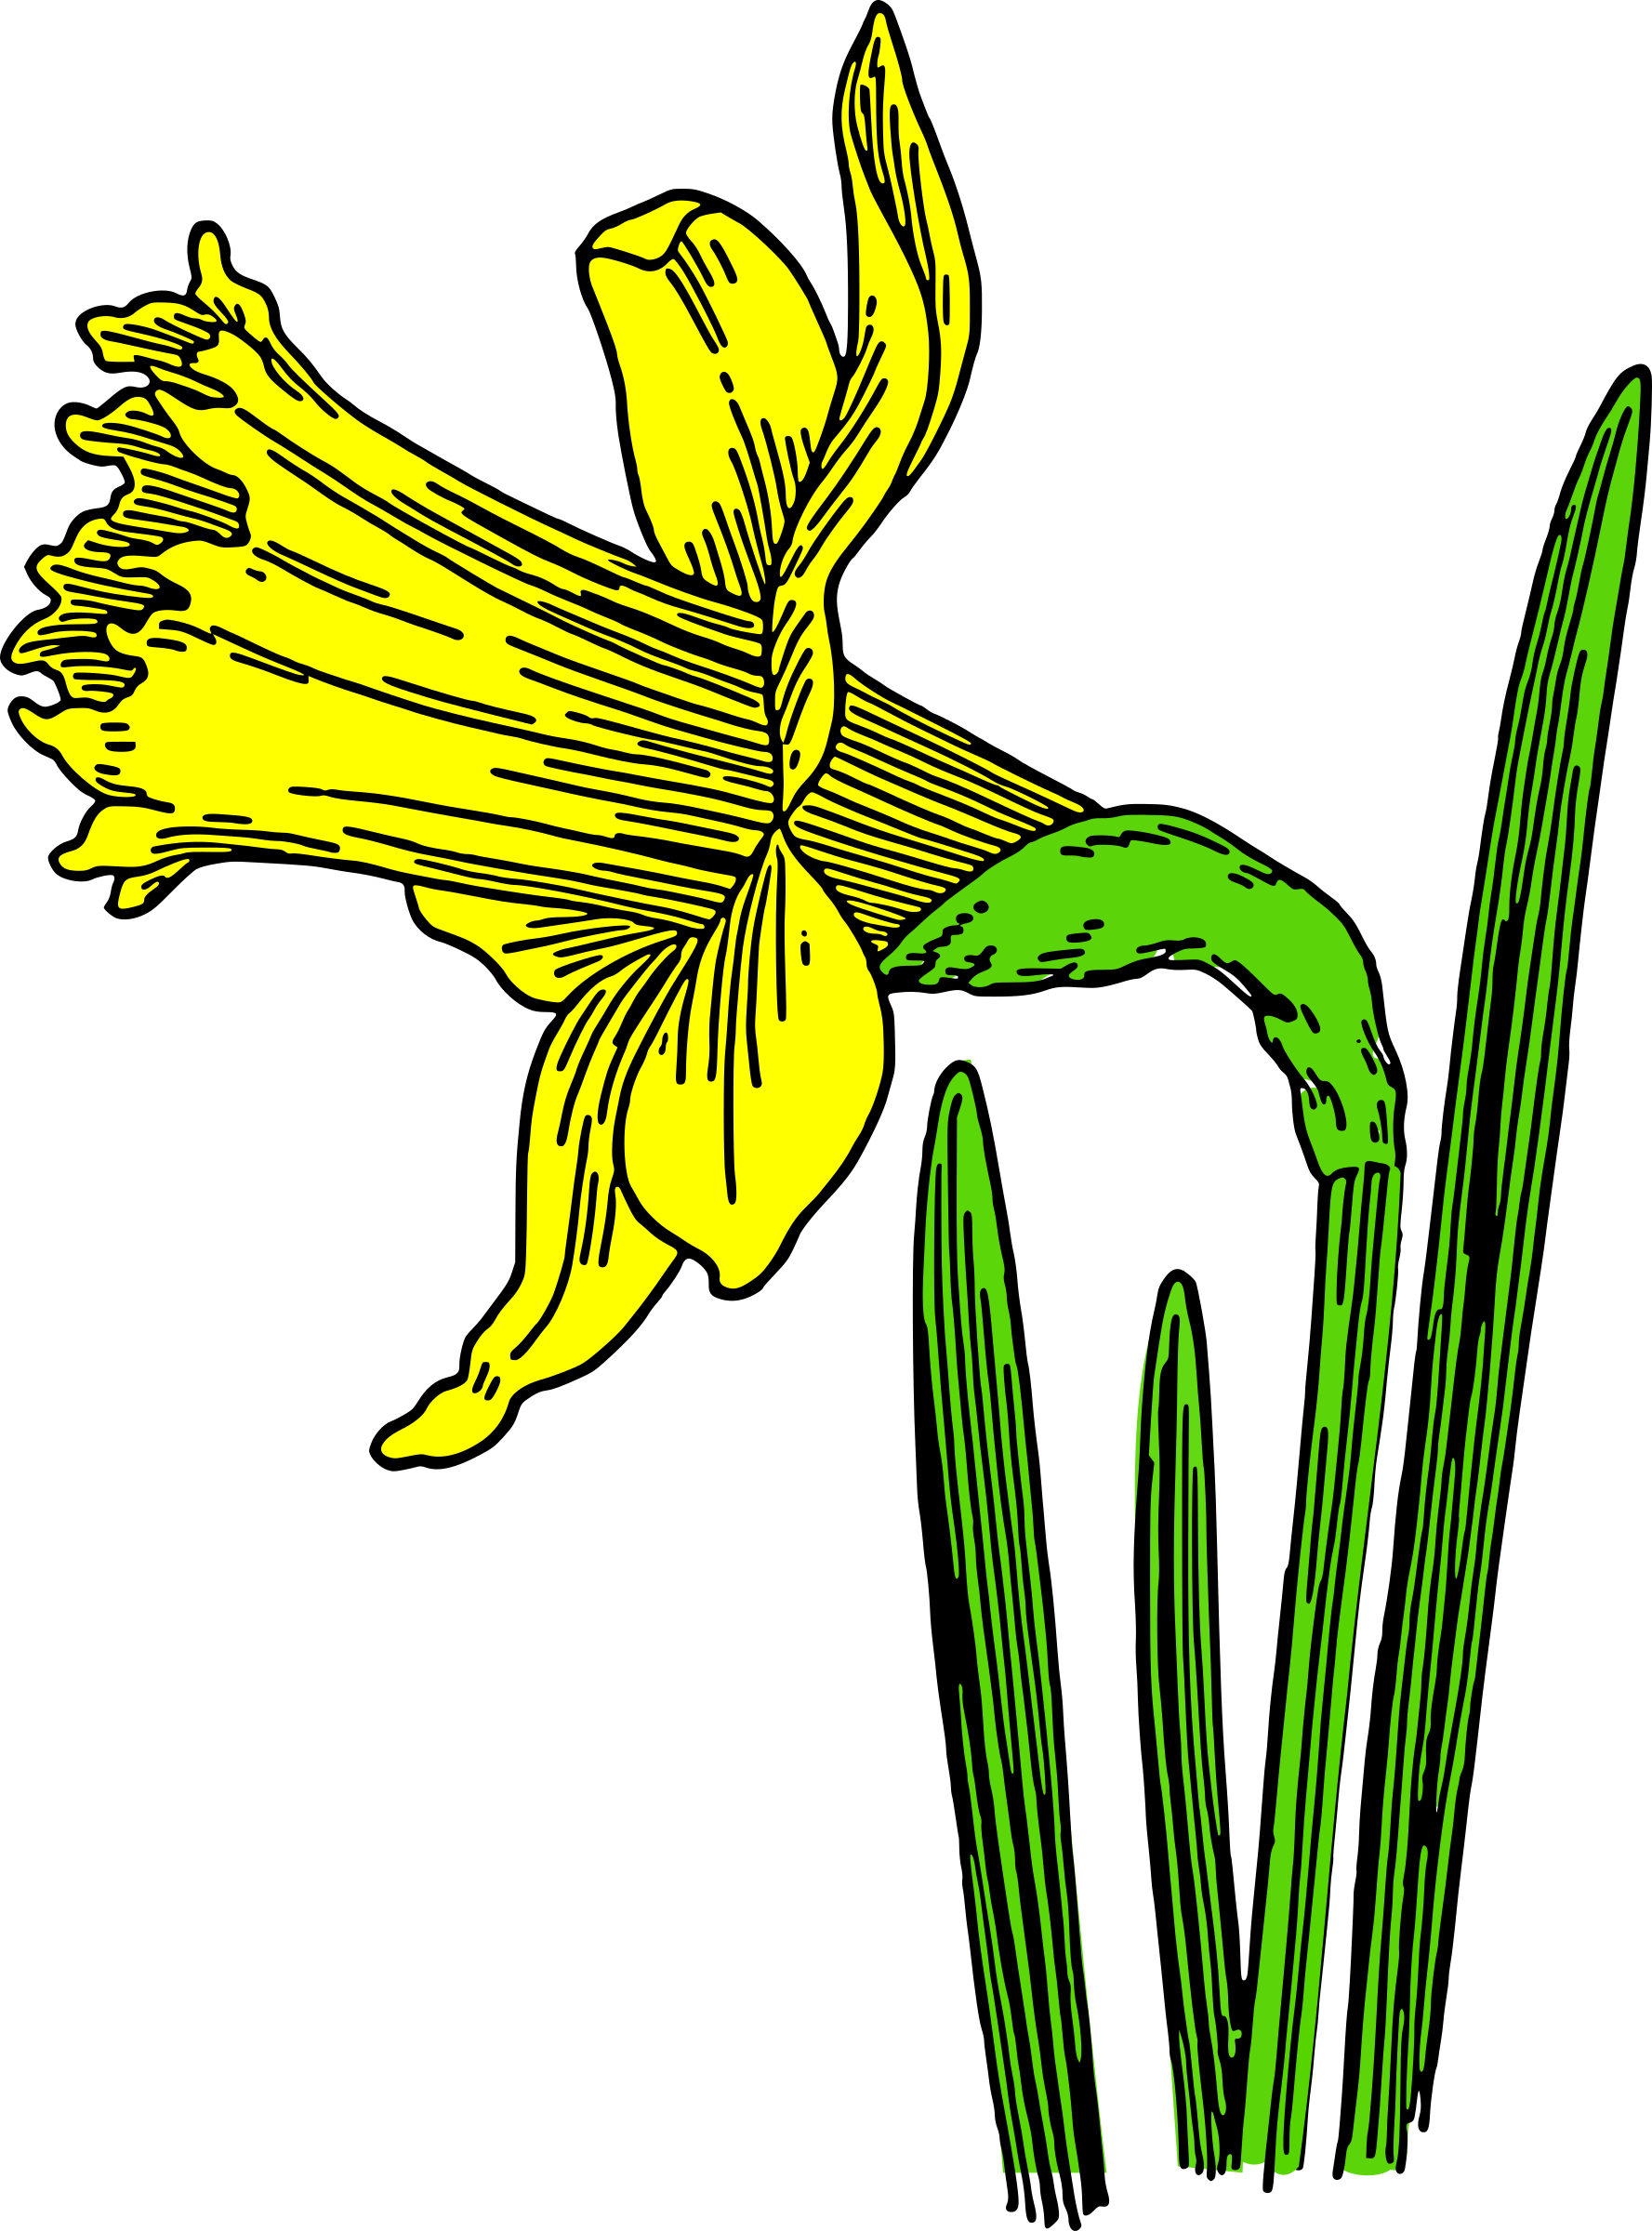 Daffodil clipart animated. Colored icons png free